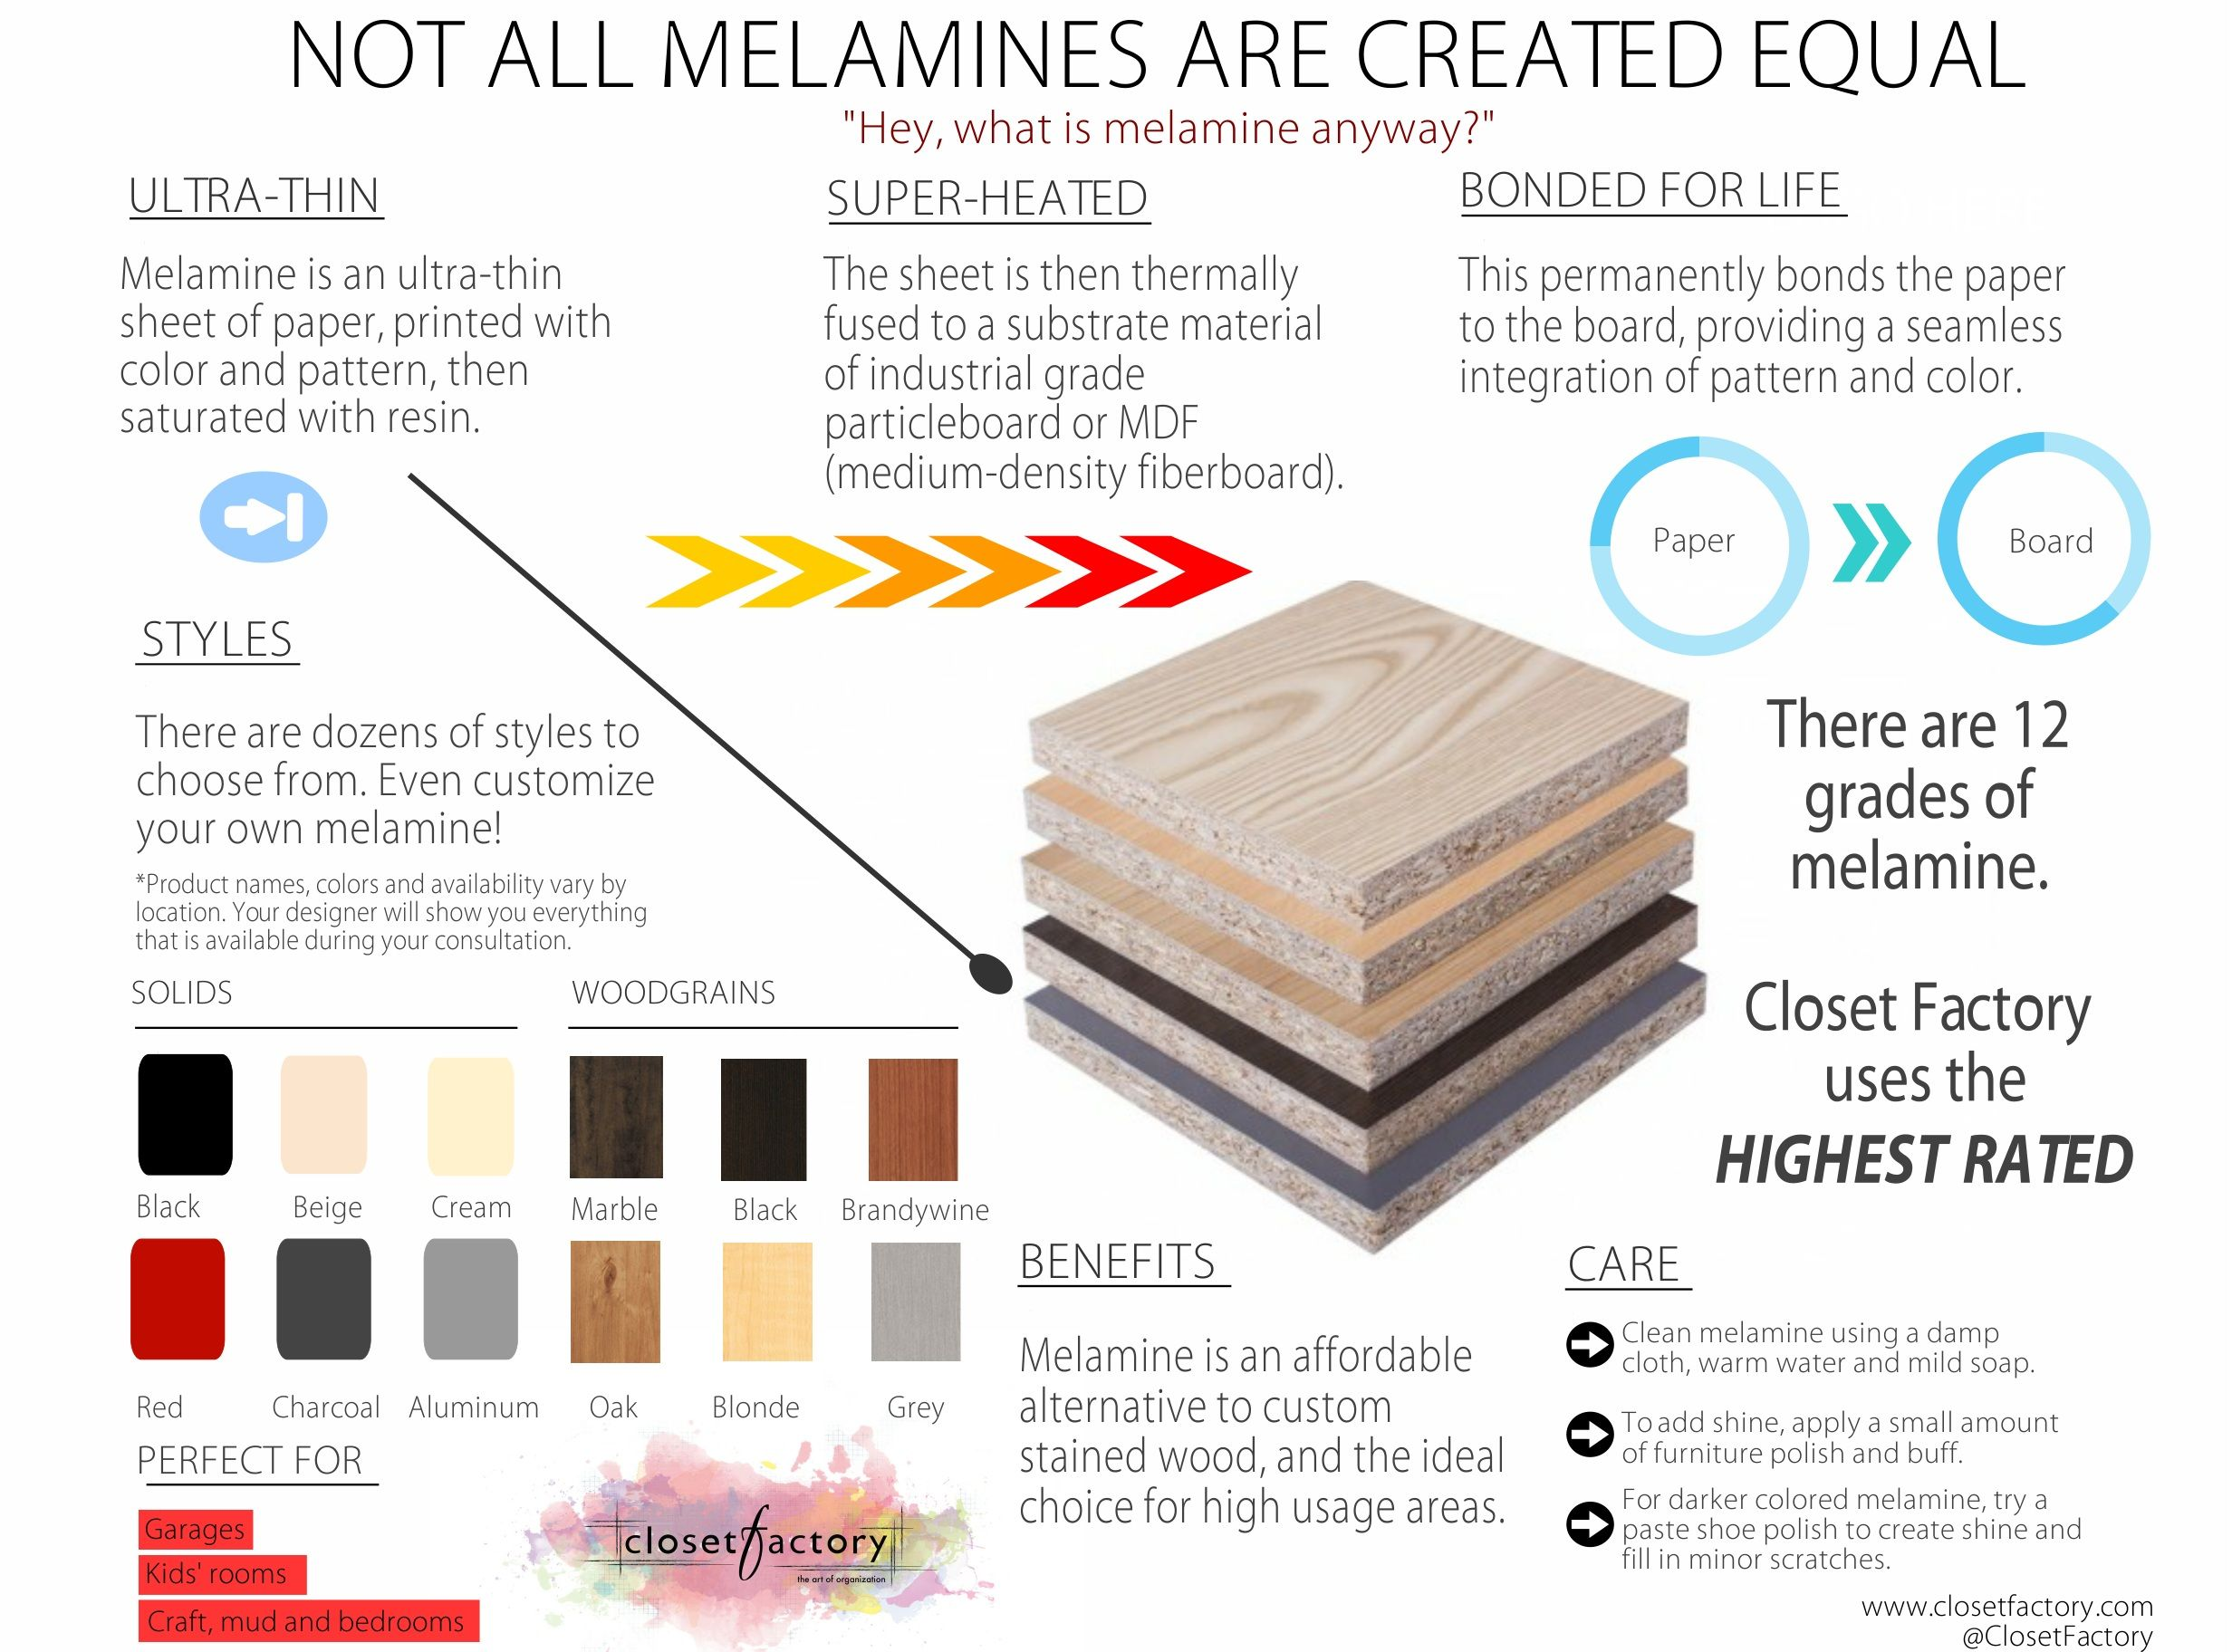 Did You Know That There Are 12 Grades Of Melamine? Closet Factory Uses The  HIGHEST